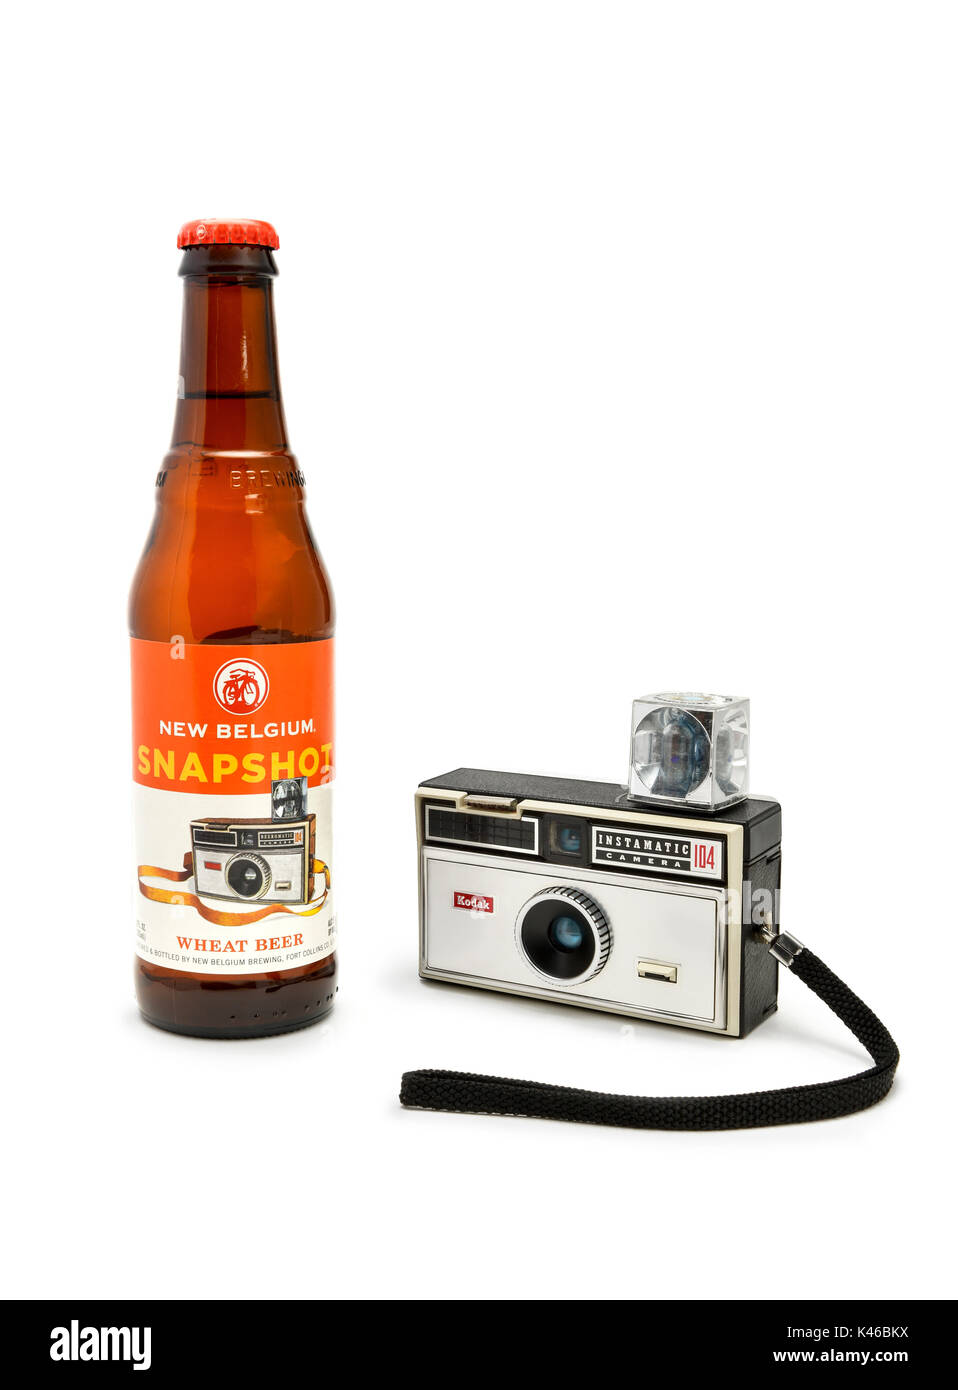 Vintage Kodak Instamatic 104 film camera from the 1970's posed with a New Belgian Snapshot Beer. - Stock Image